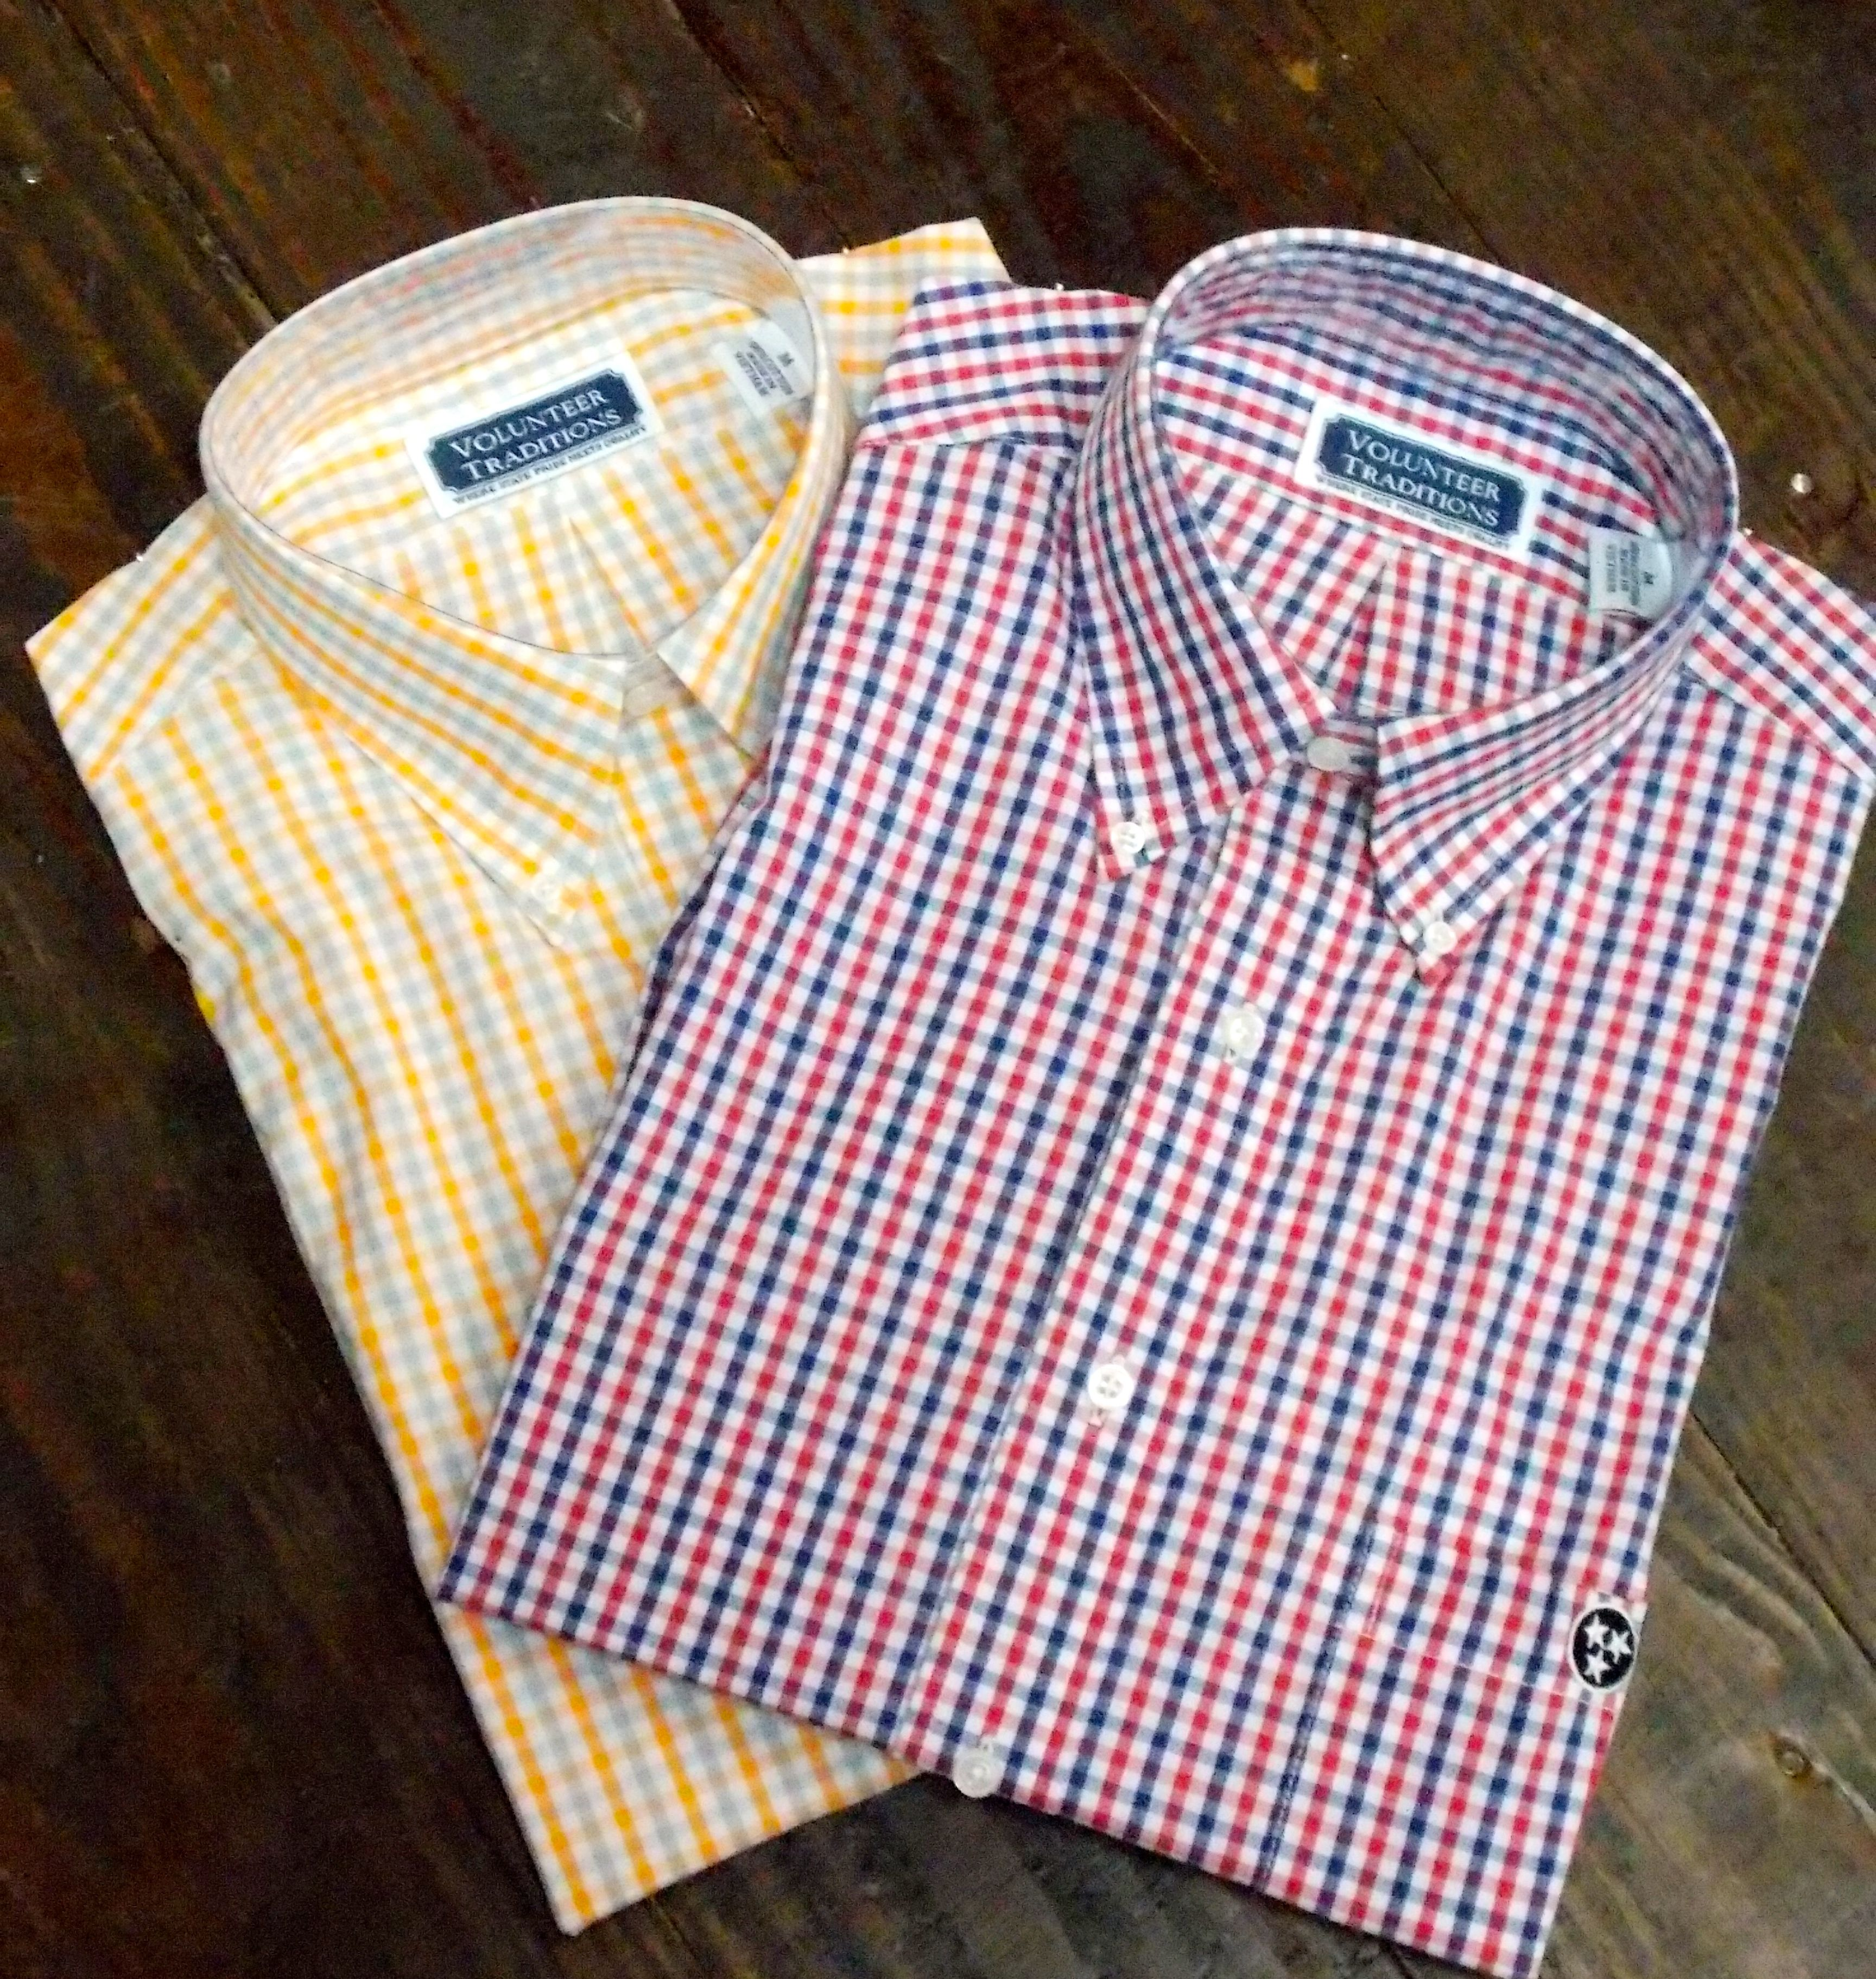 Show your school pride in these Volunteer Traditions button ups.  dixiepickersstore.com